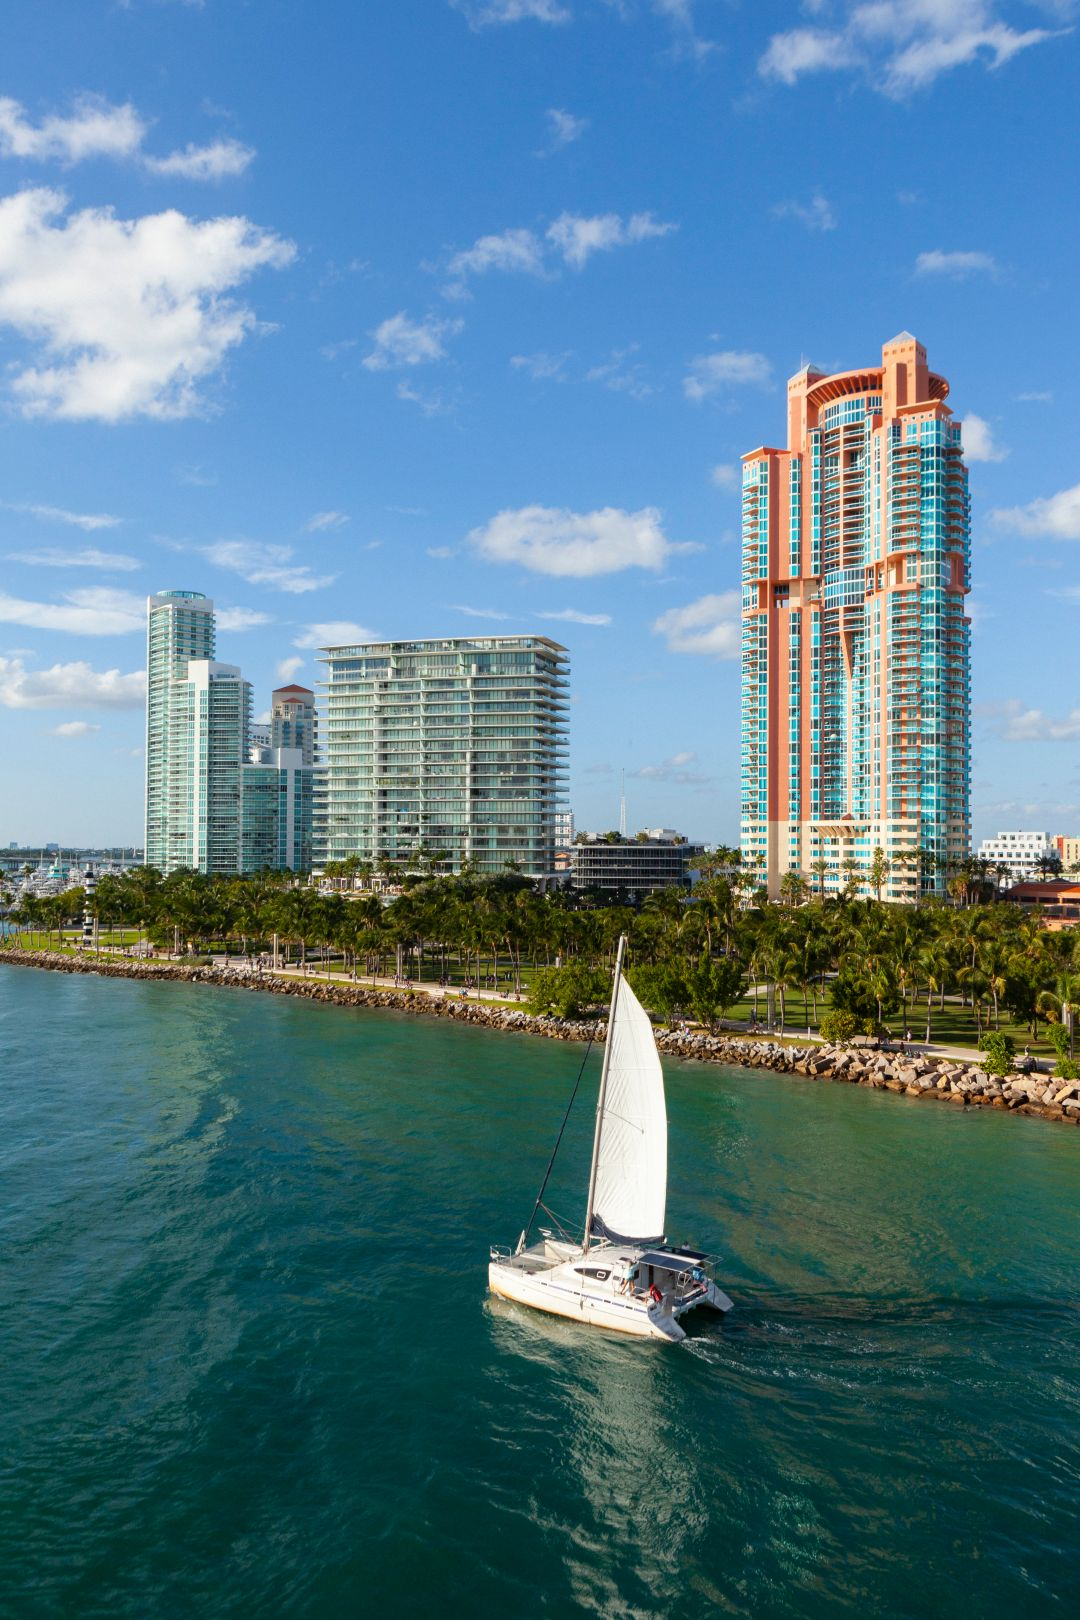 A photo depicting Florida Stock images 7